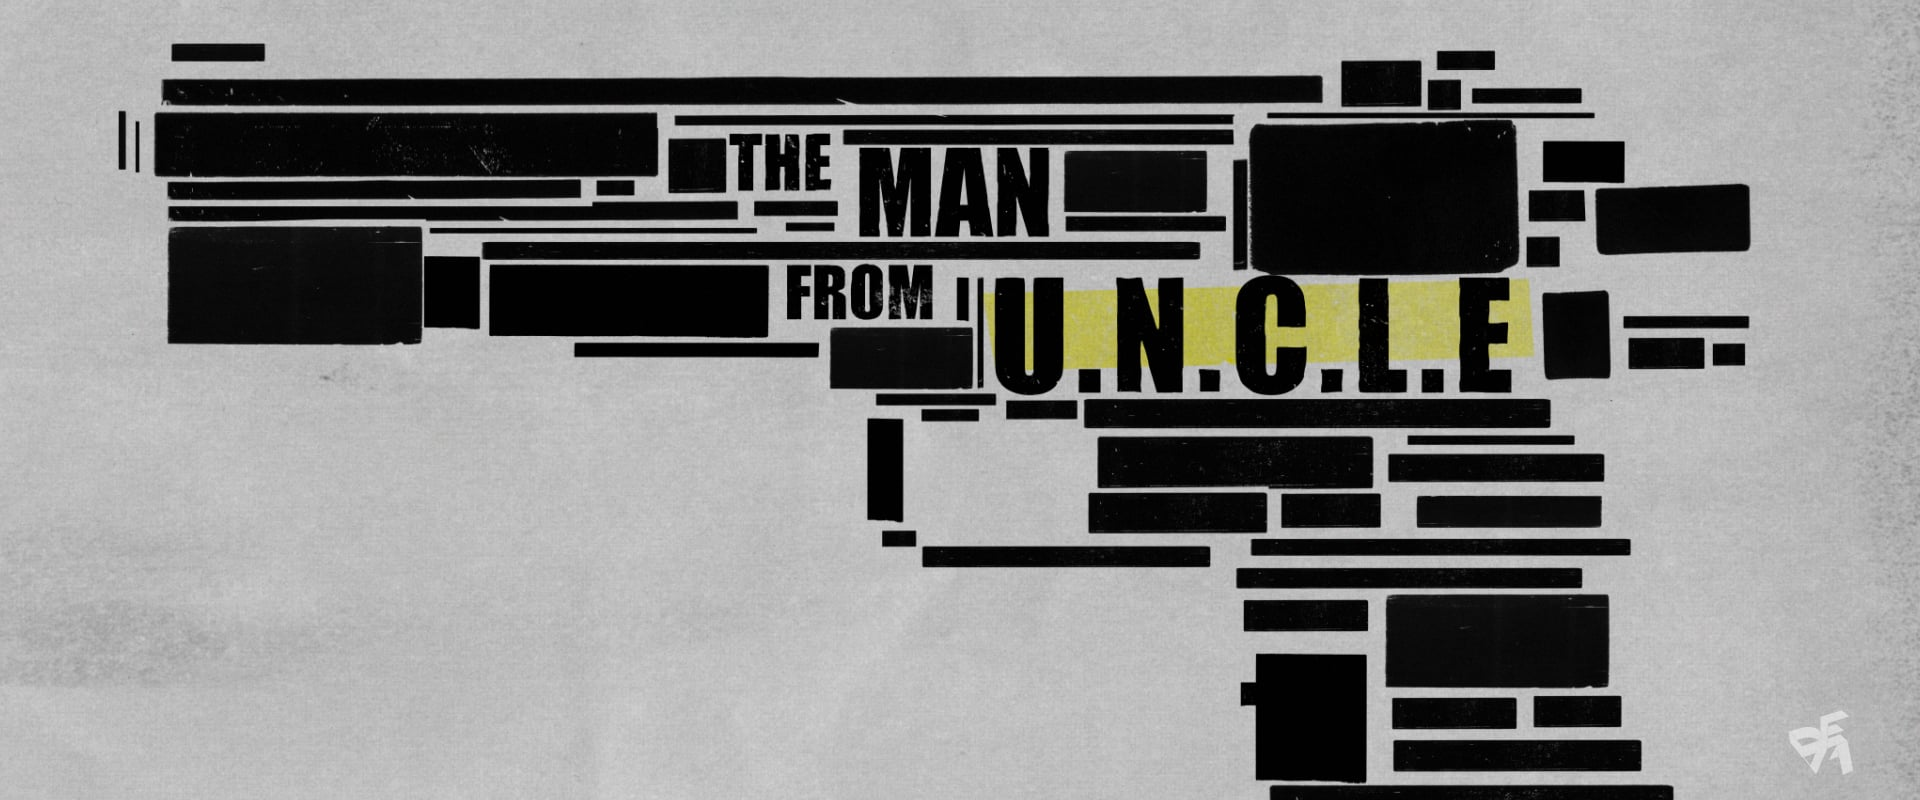 TheManFromUncle-STYLEFRAME_03.jpg